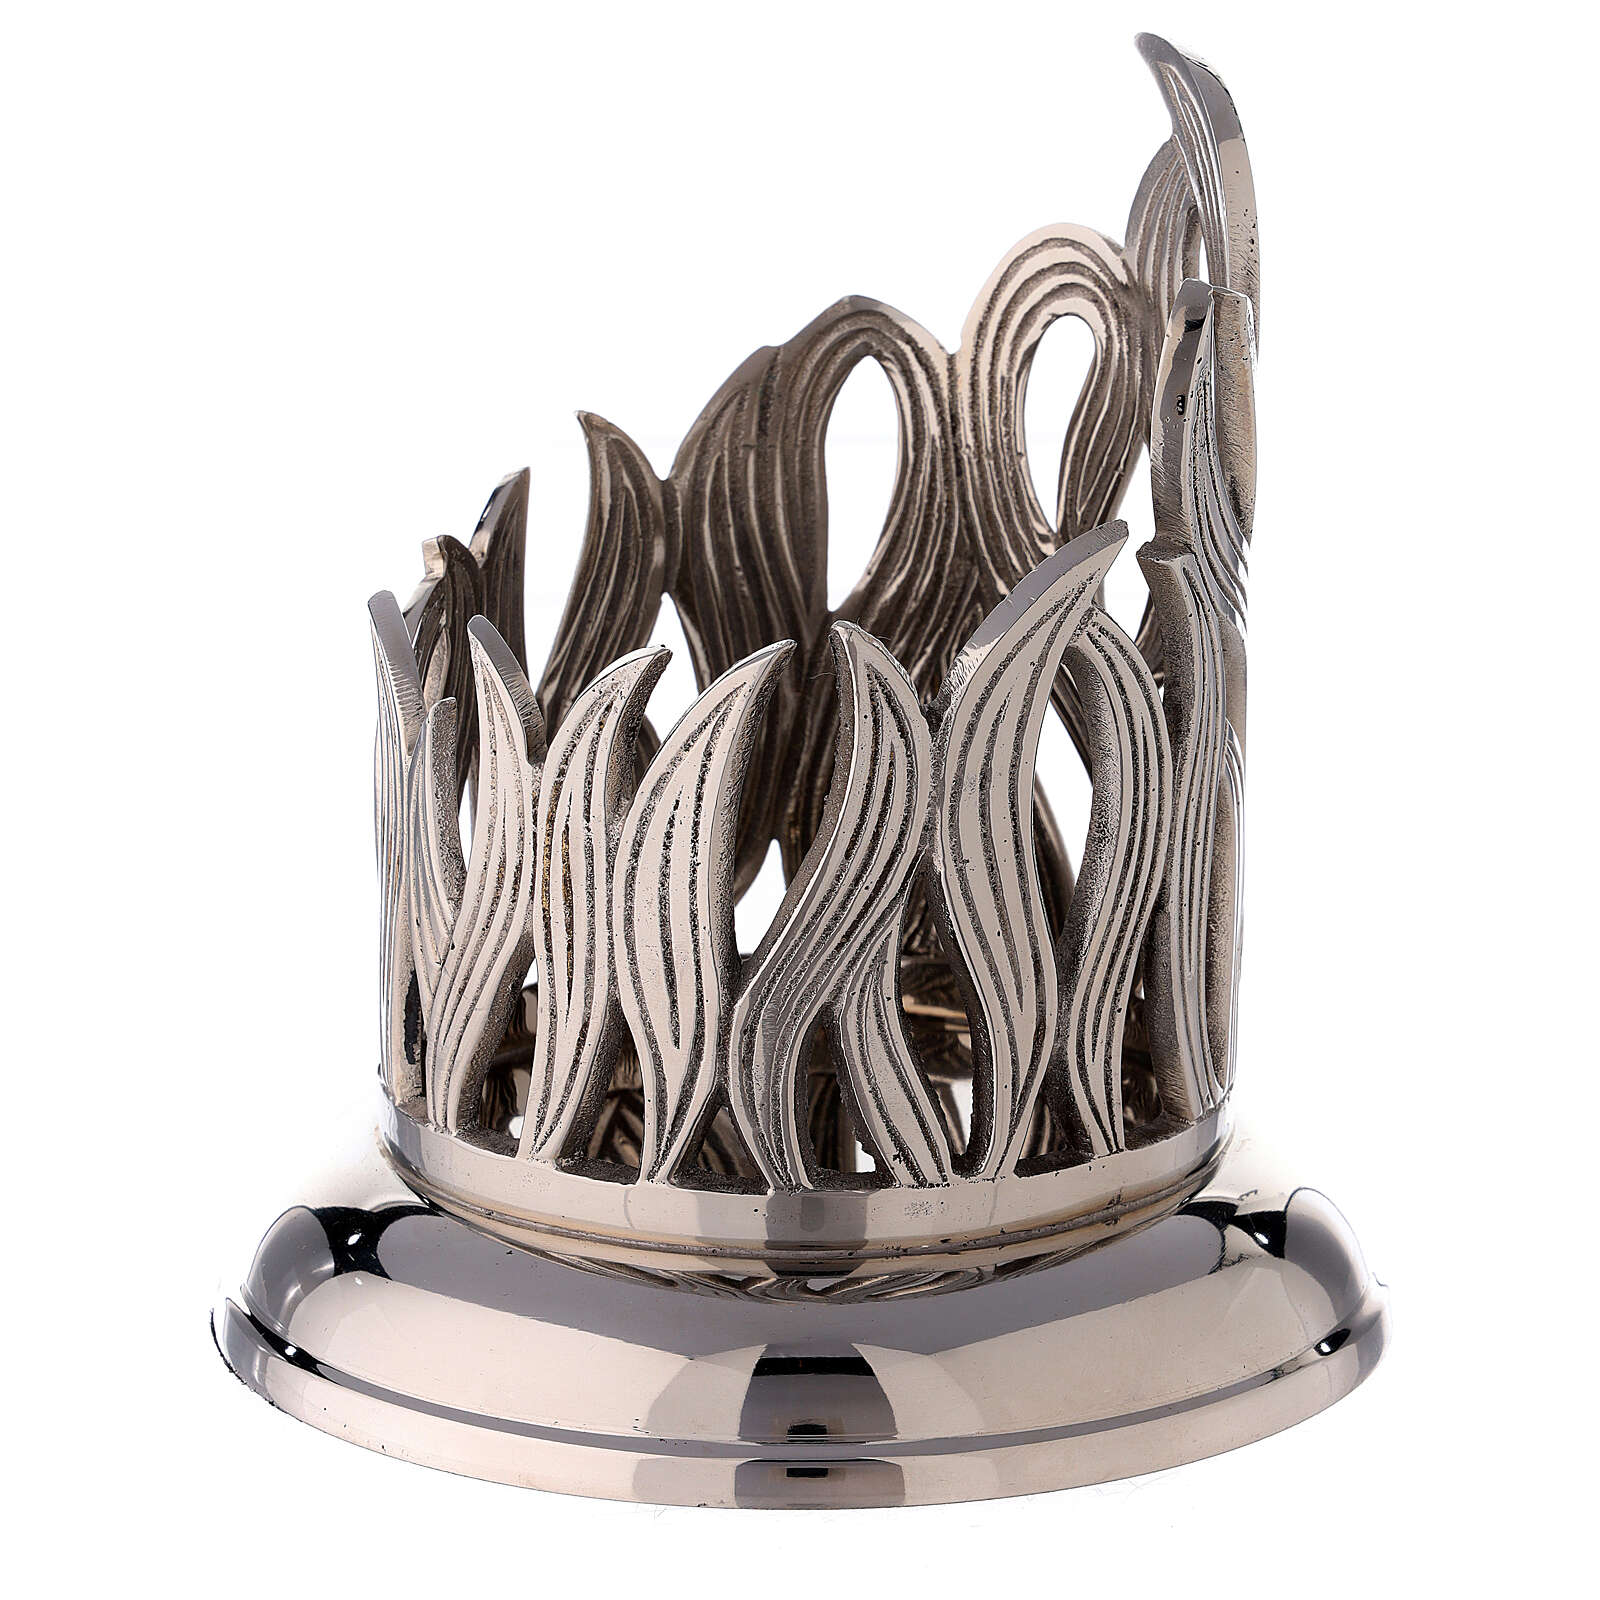 Nickel-plated brass candle holder with flames 4 in diameter 4